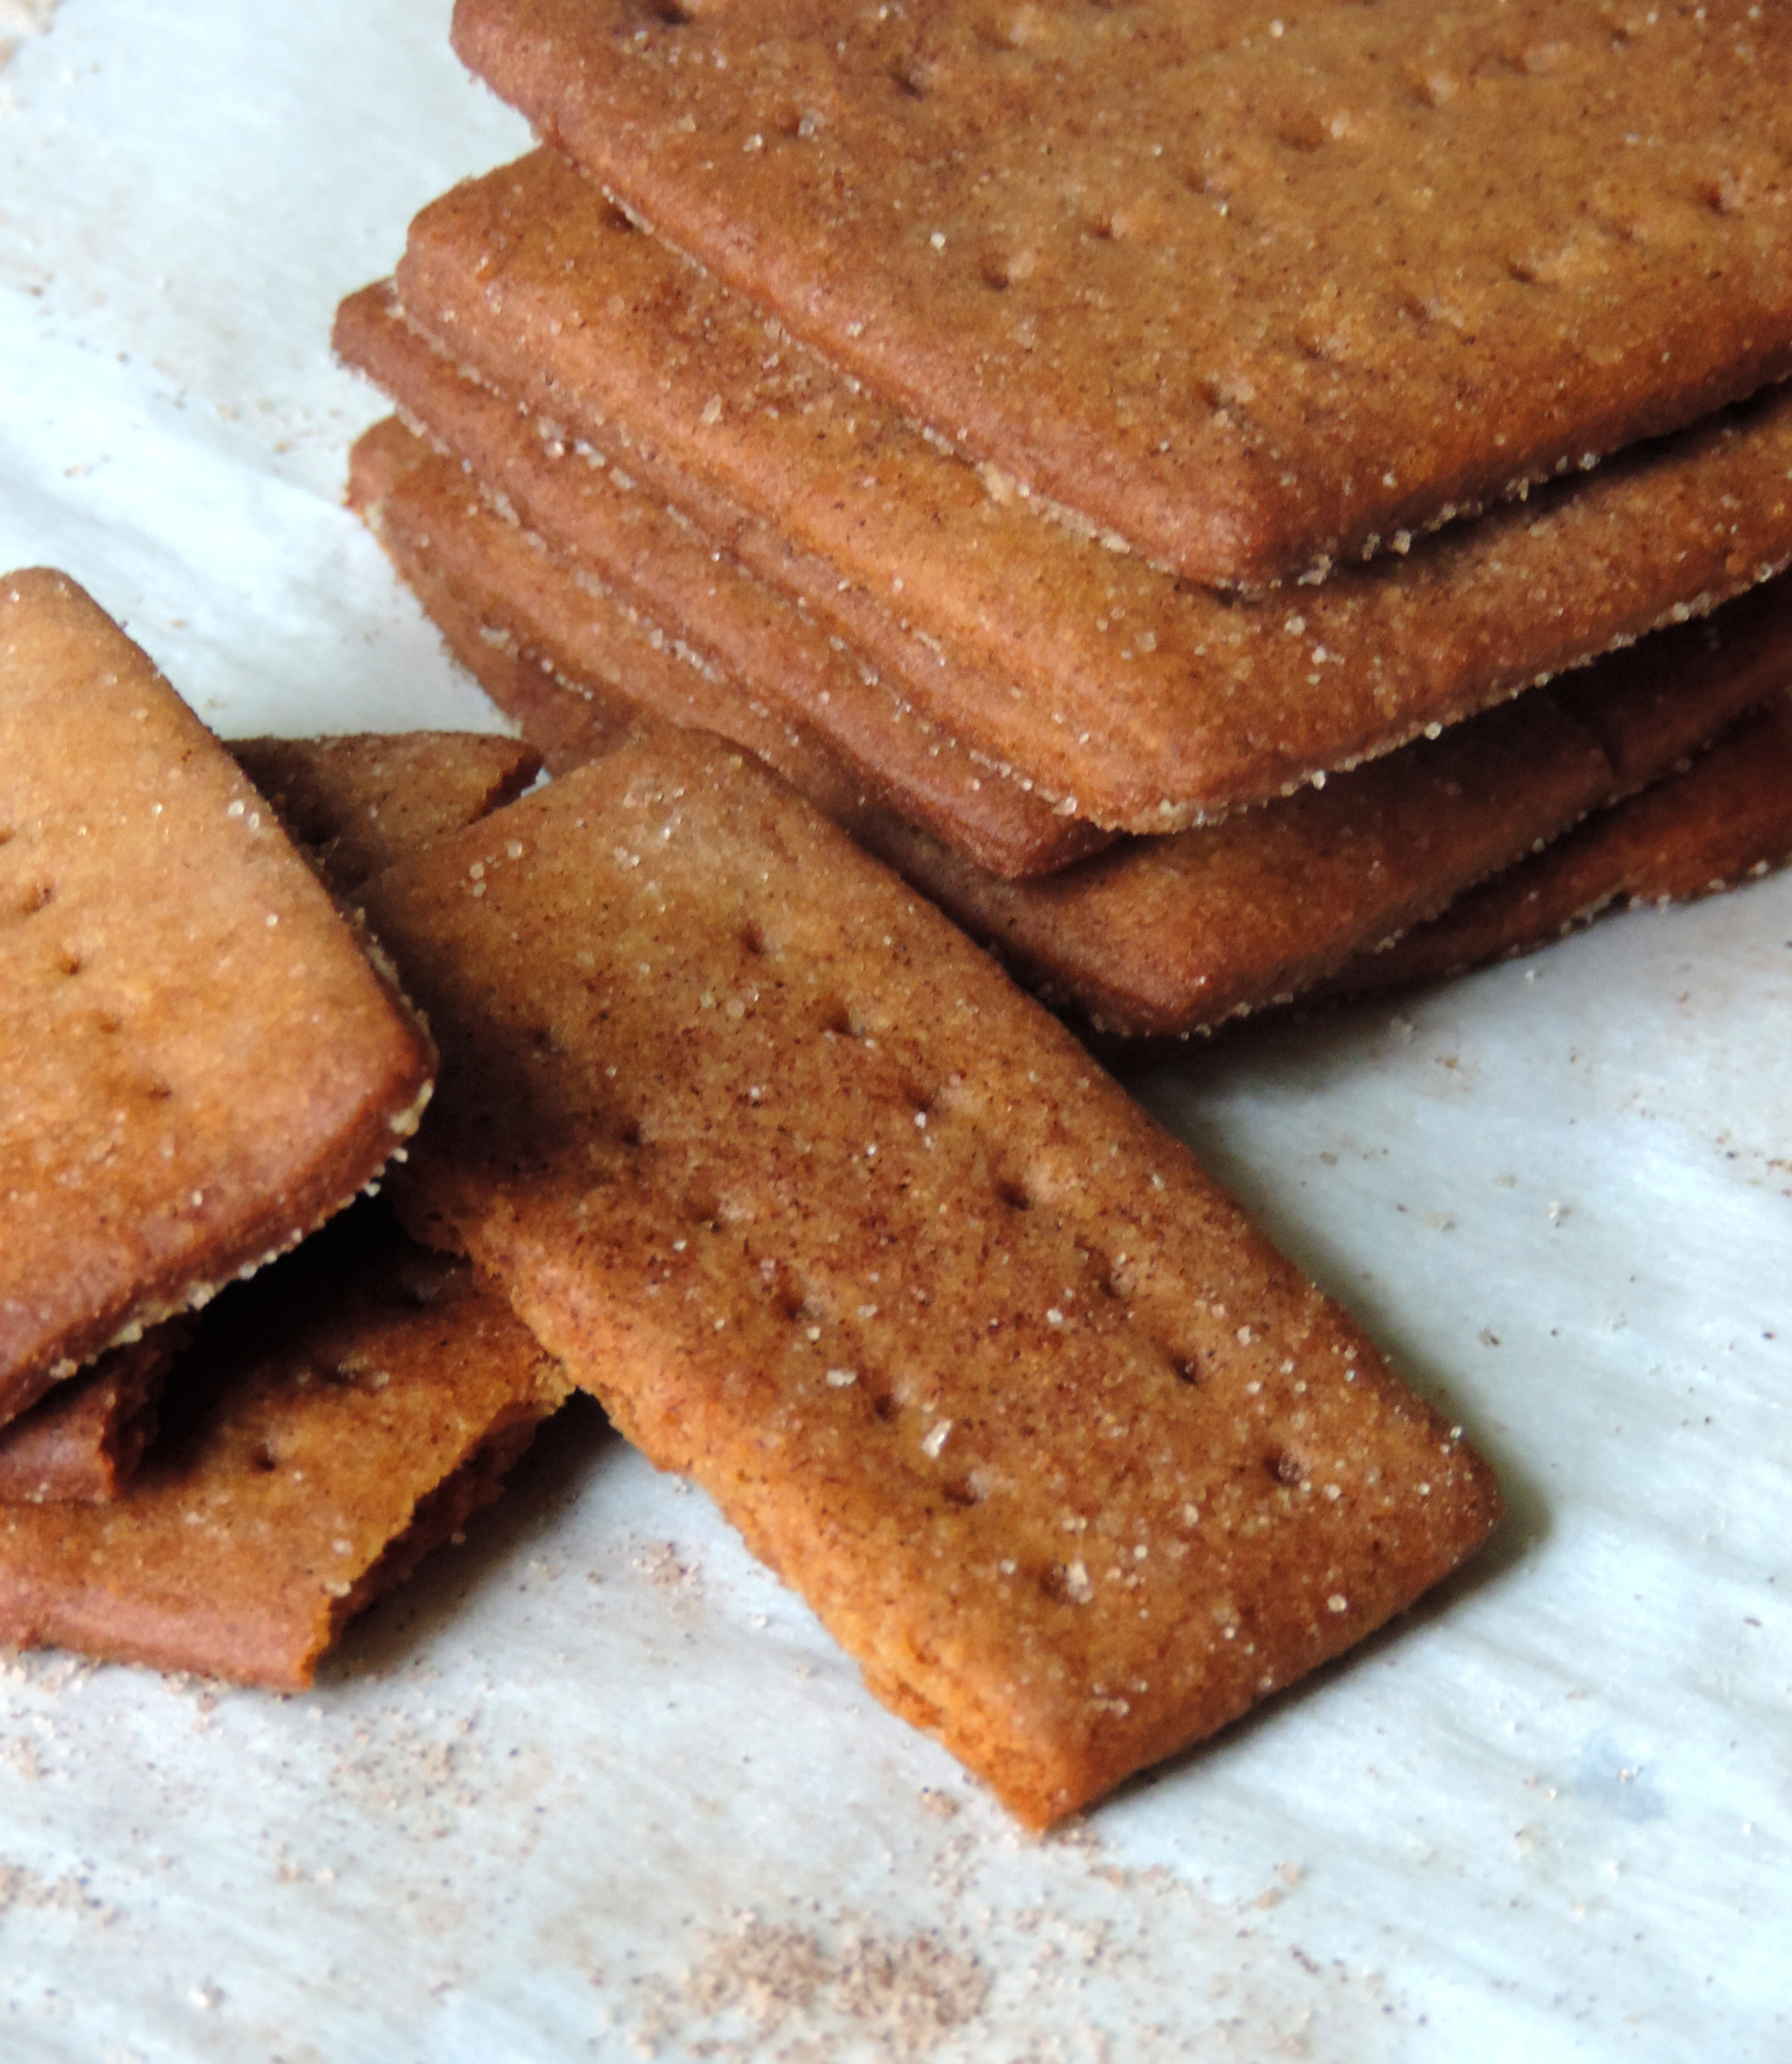 Homemade Cinnamon Graham Crackers: crunchy, buttery, and so much easier than you think they are. Better than what you find in a box!